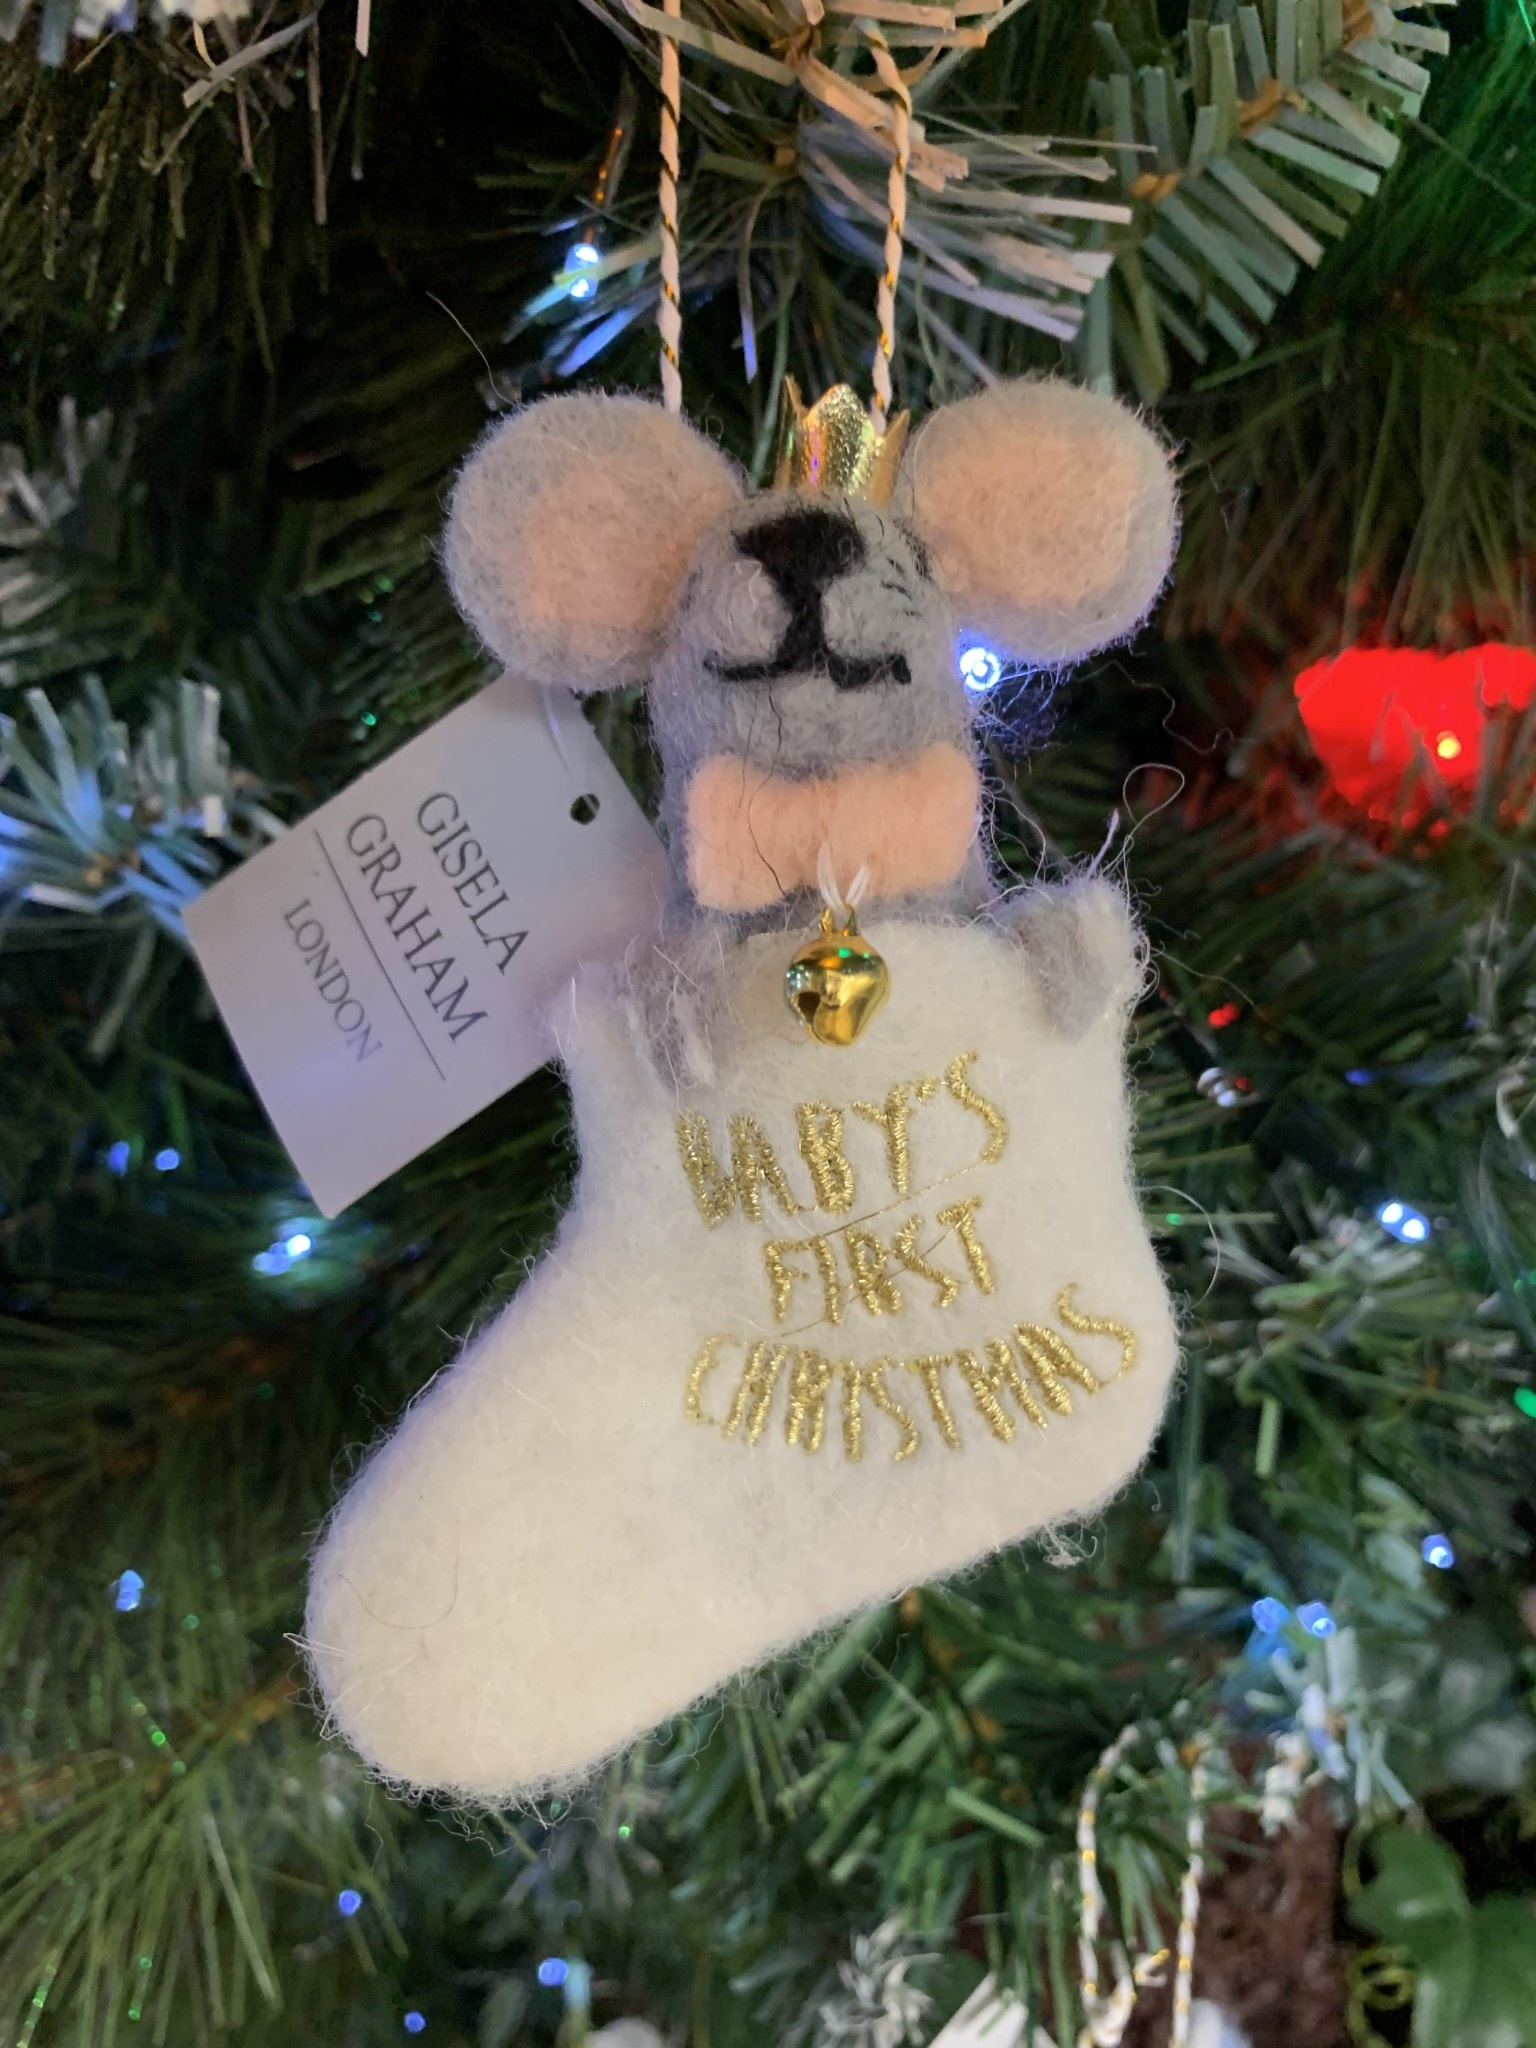 Wool Mix Baby's First Grey Mouse in Stocking Hanging Decoration